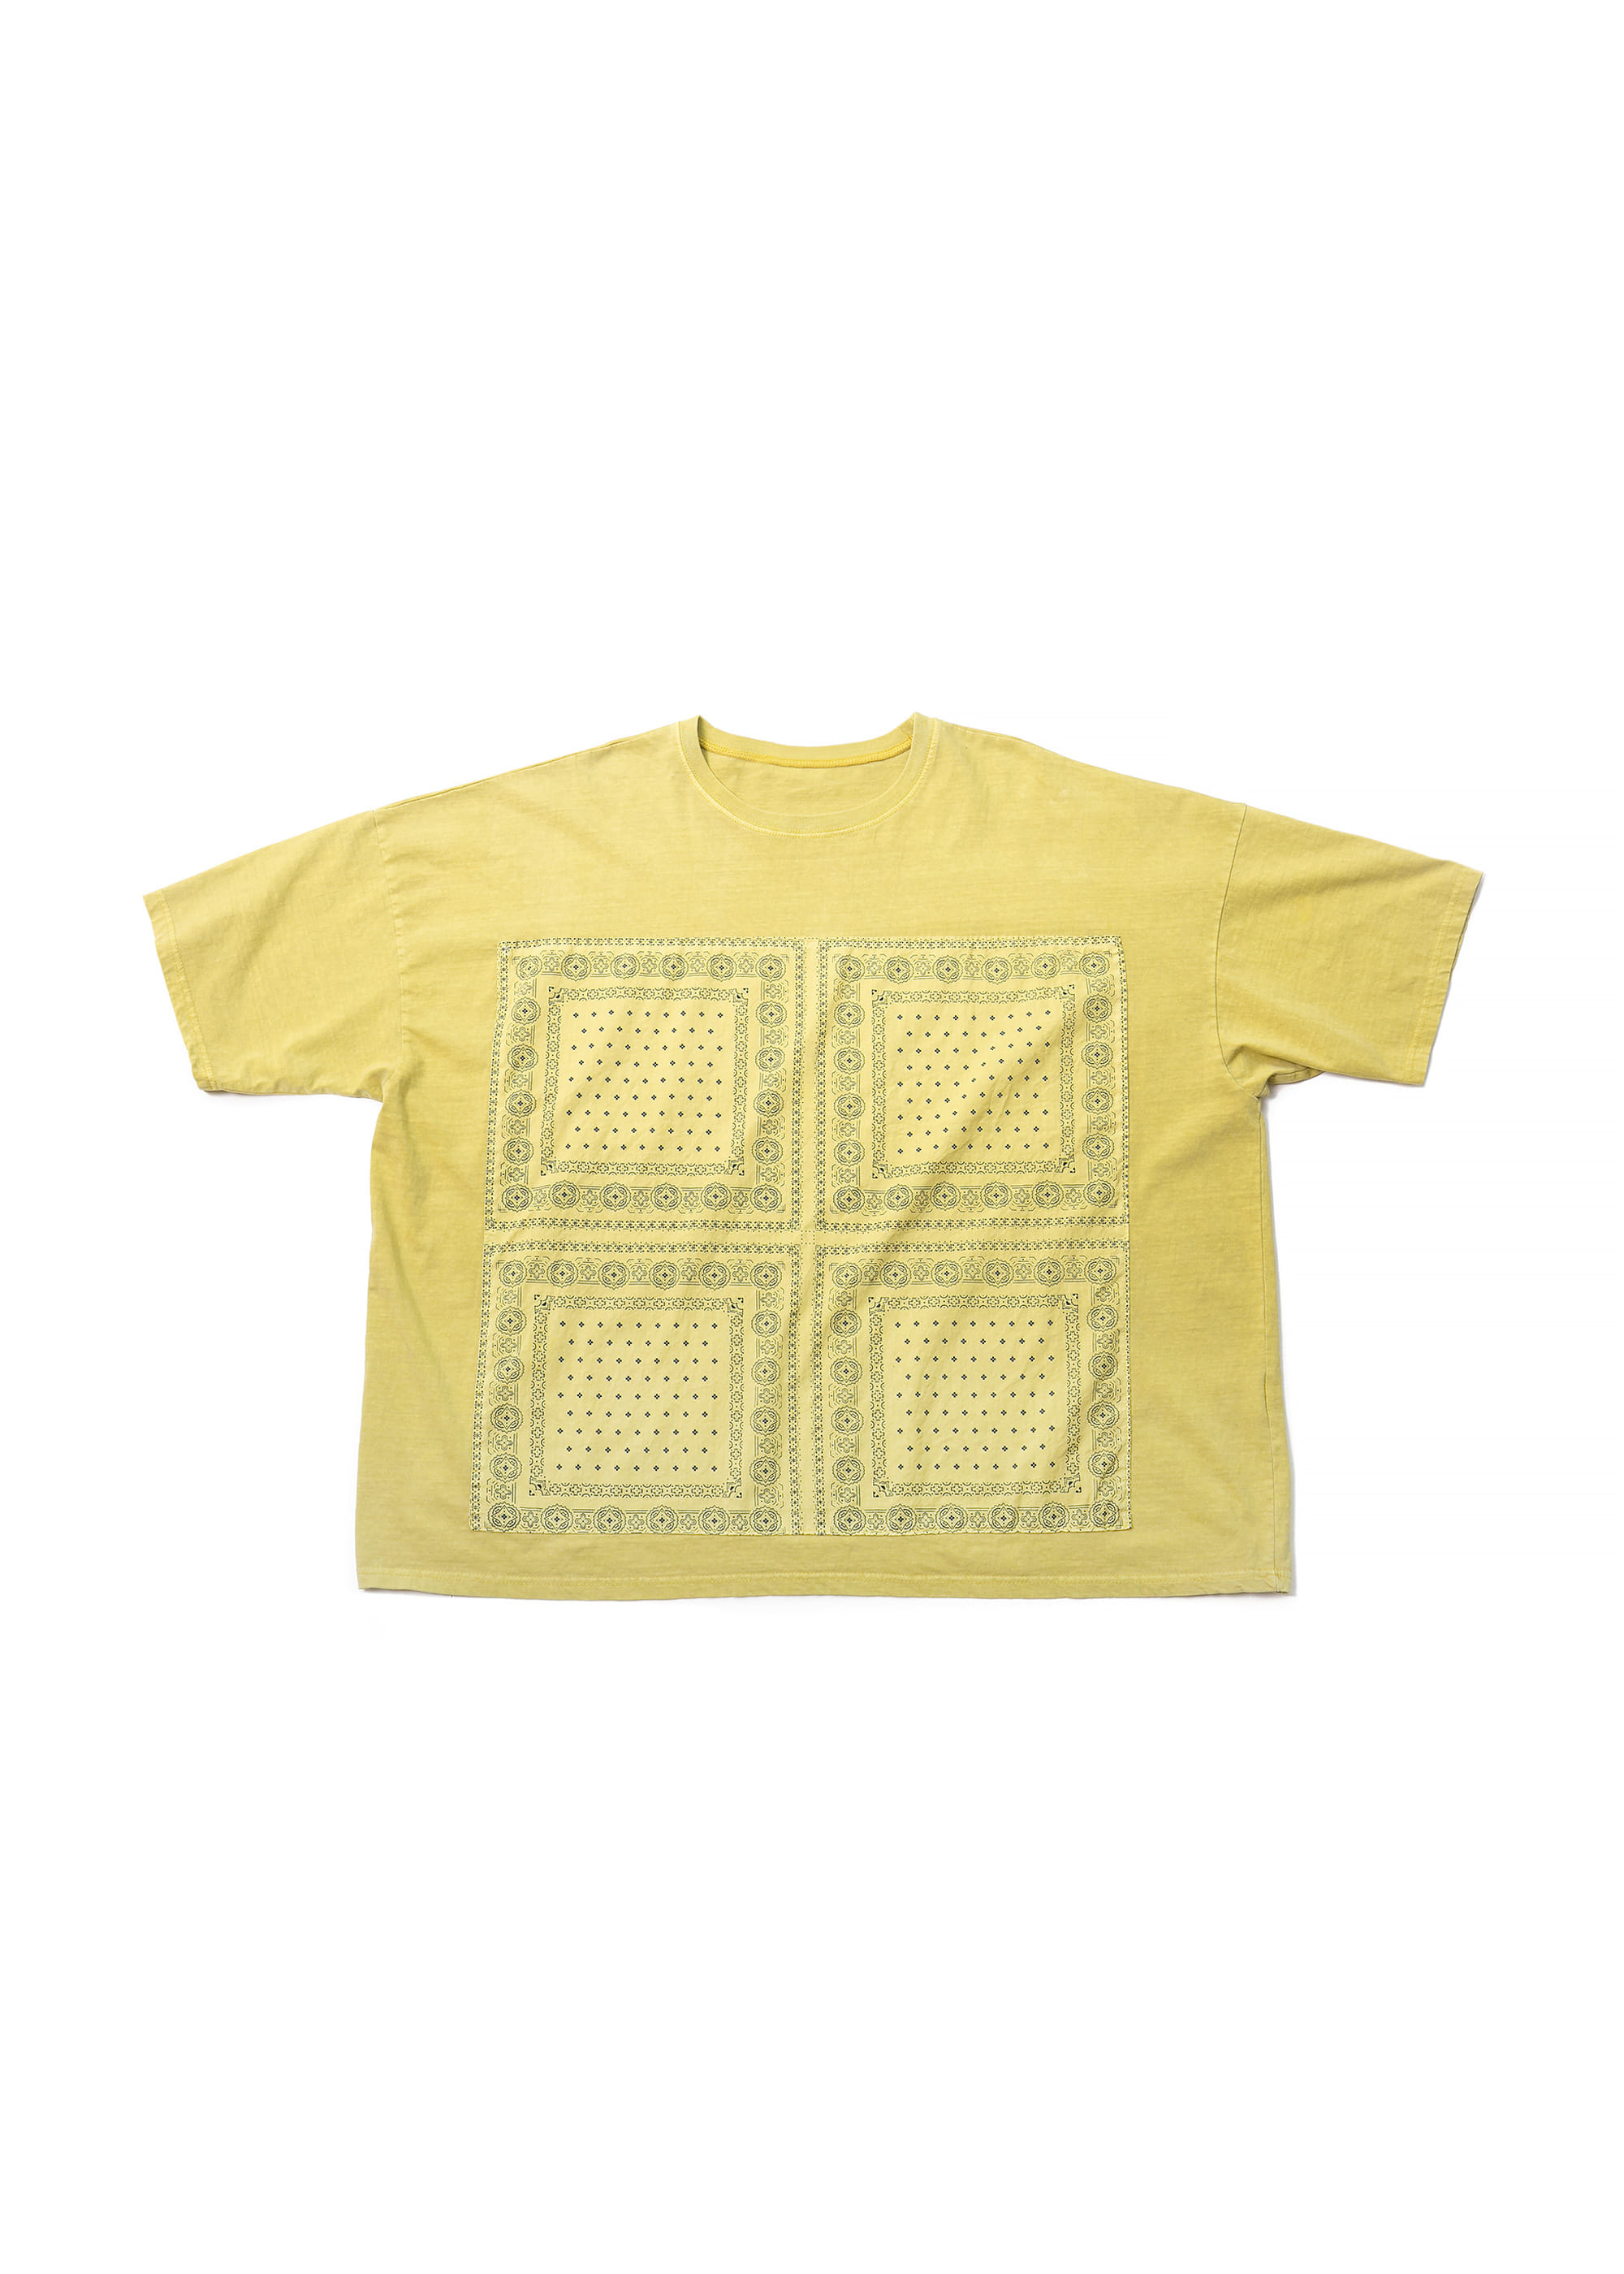 Paisley Pigment Washing Over Tee - Yellow